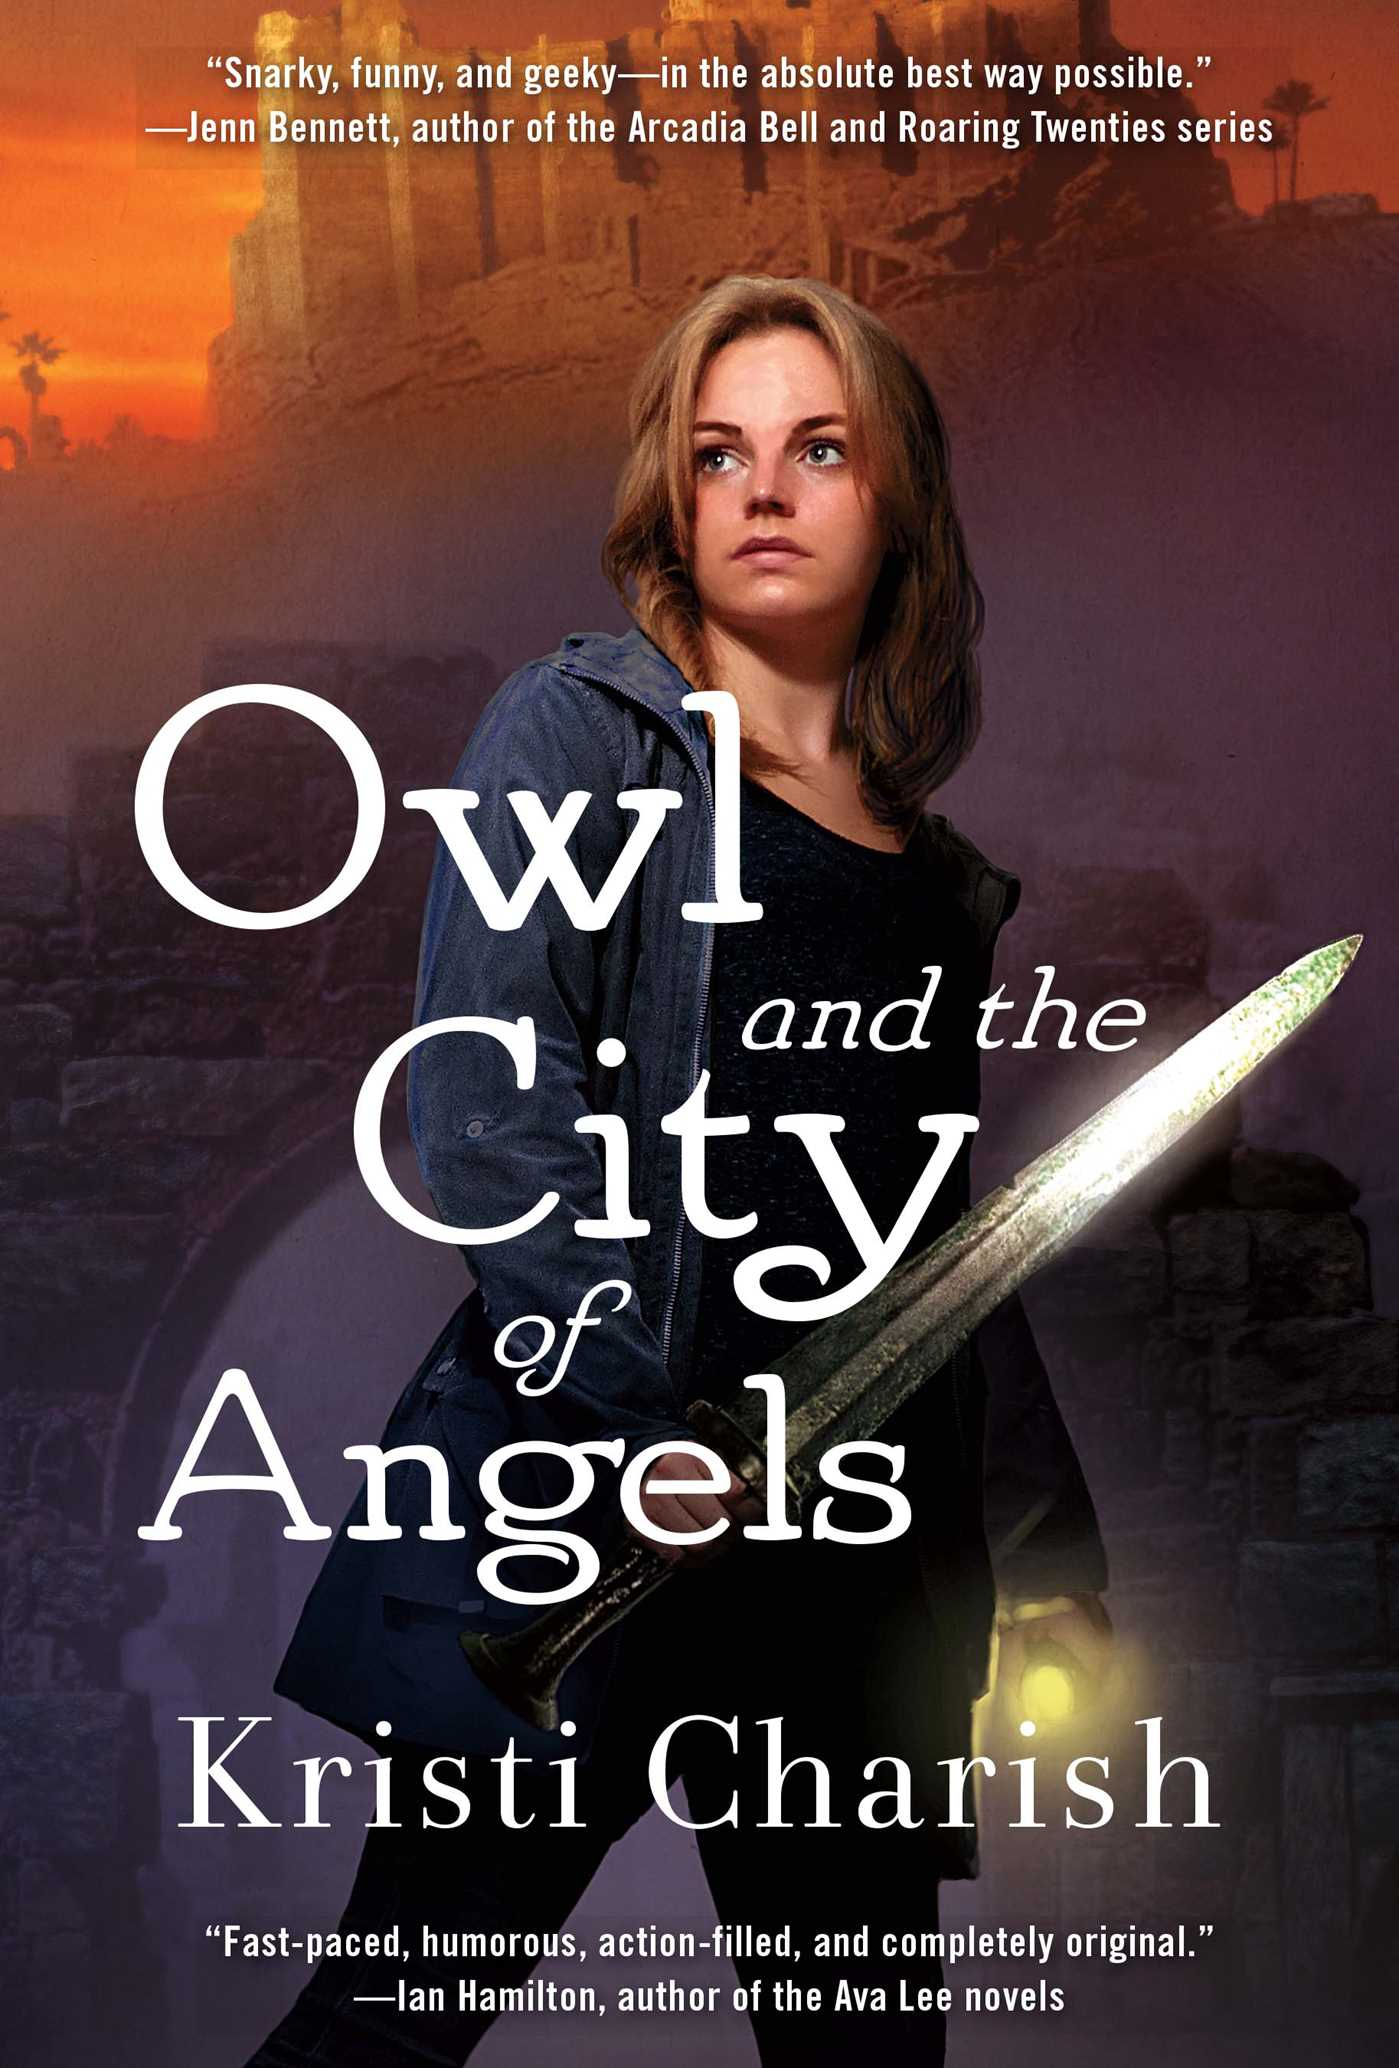 Owl and the city of angels 9781501122101 hr